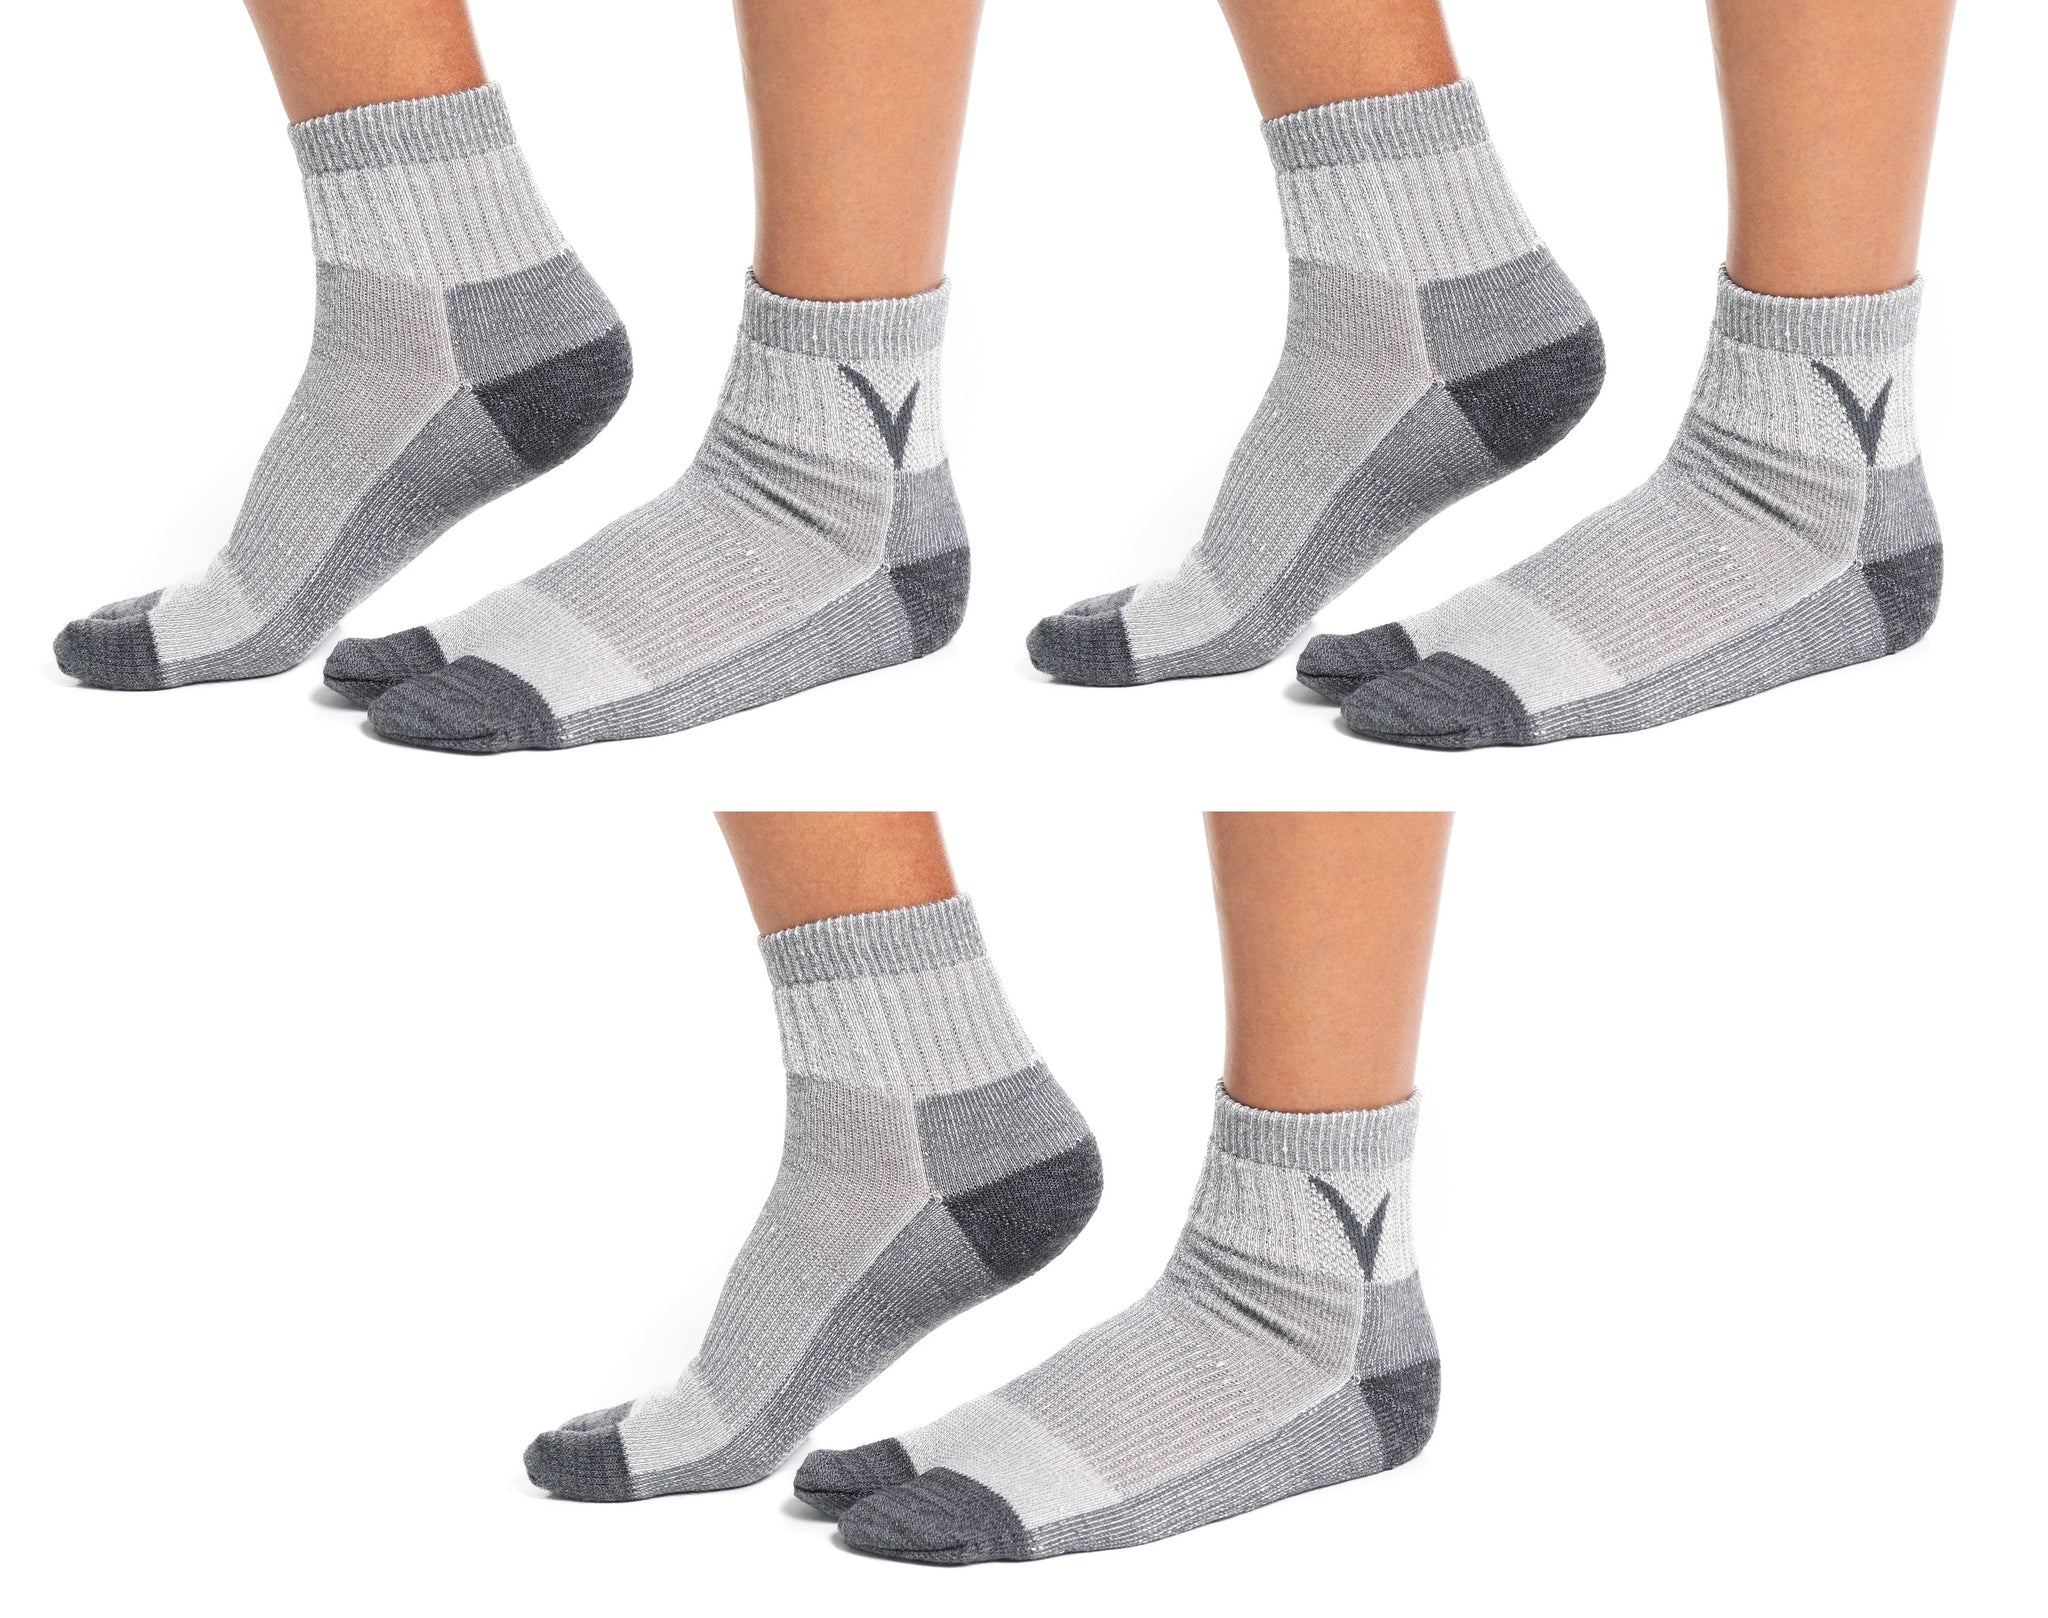 3 Pairs Light Grey Wool For Hiking Or Casual Flip-Flop VToe Tabi Socks